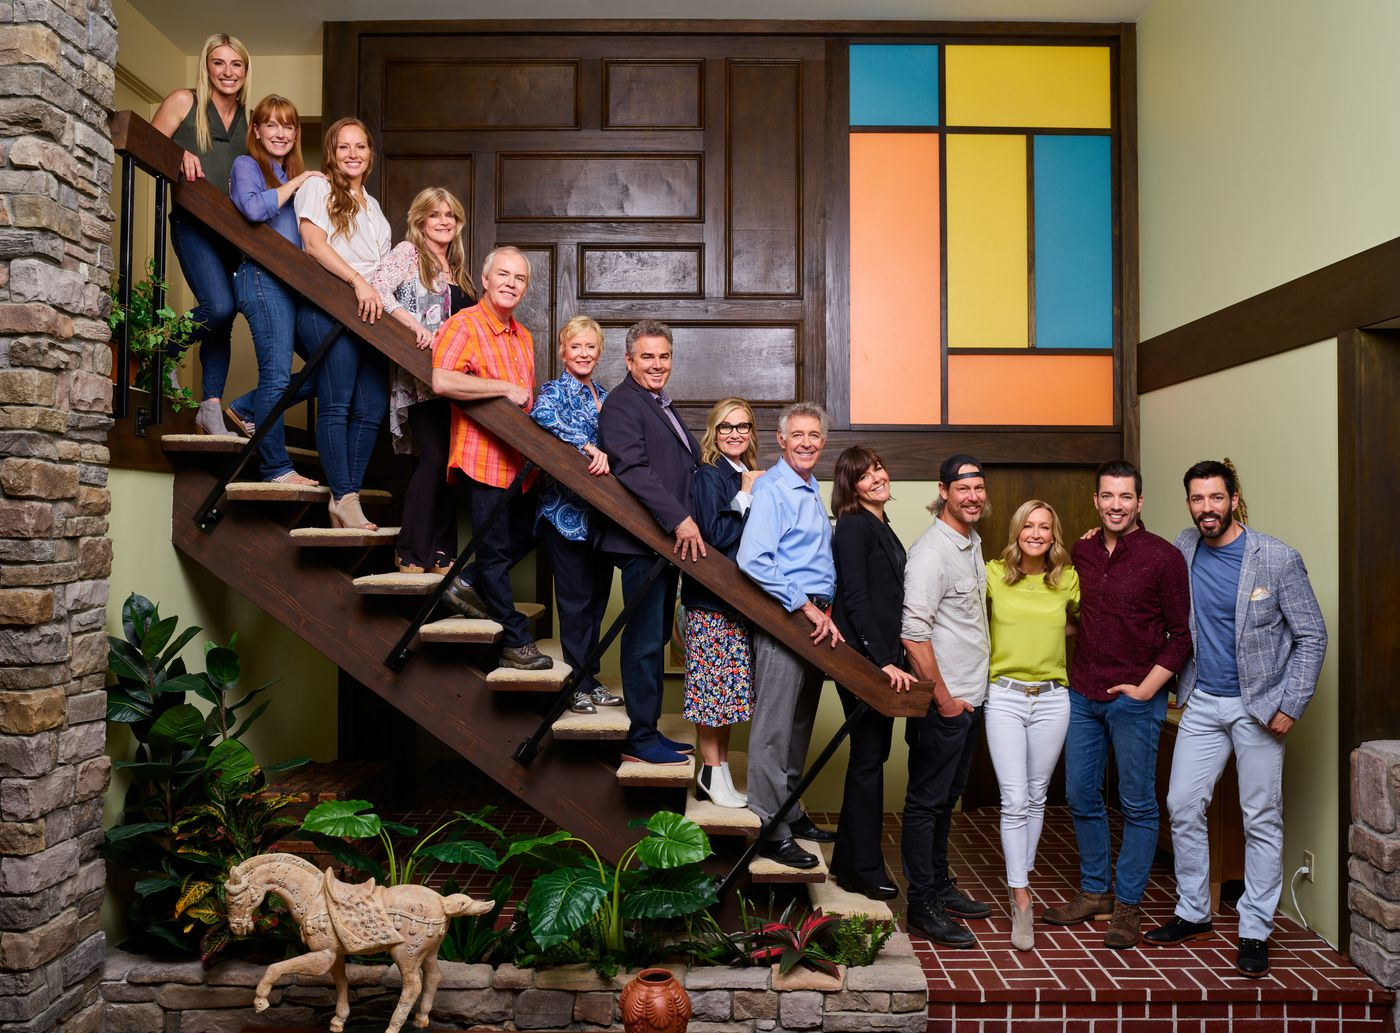 Photo of the Brady Bunch on a staircase